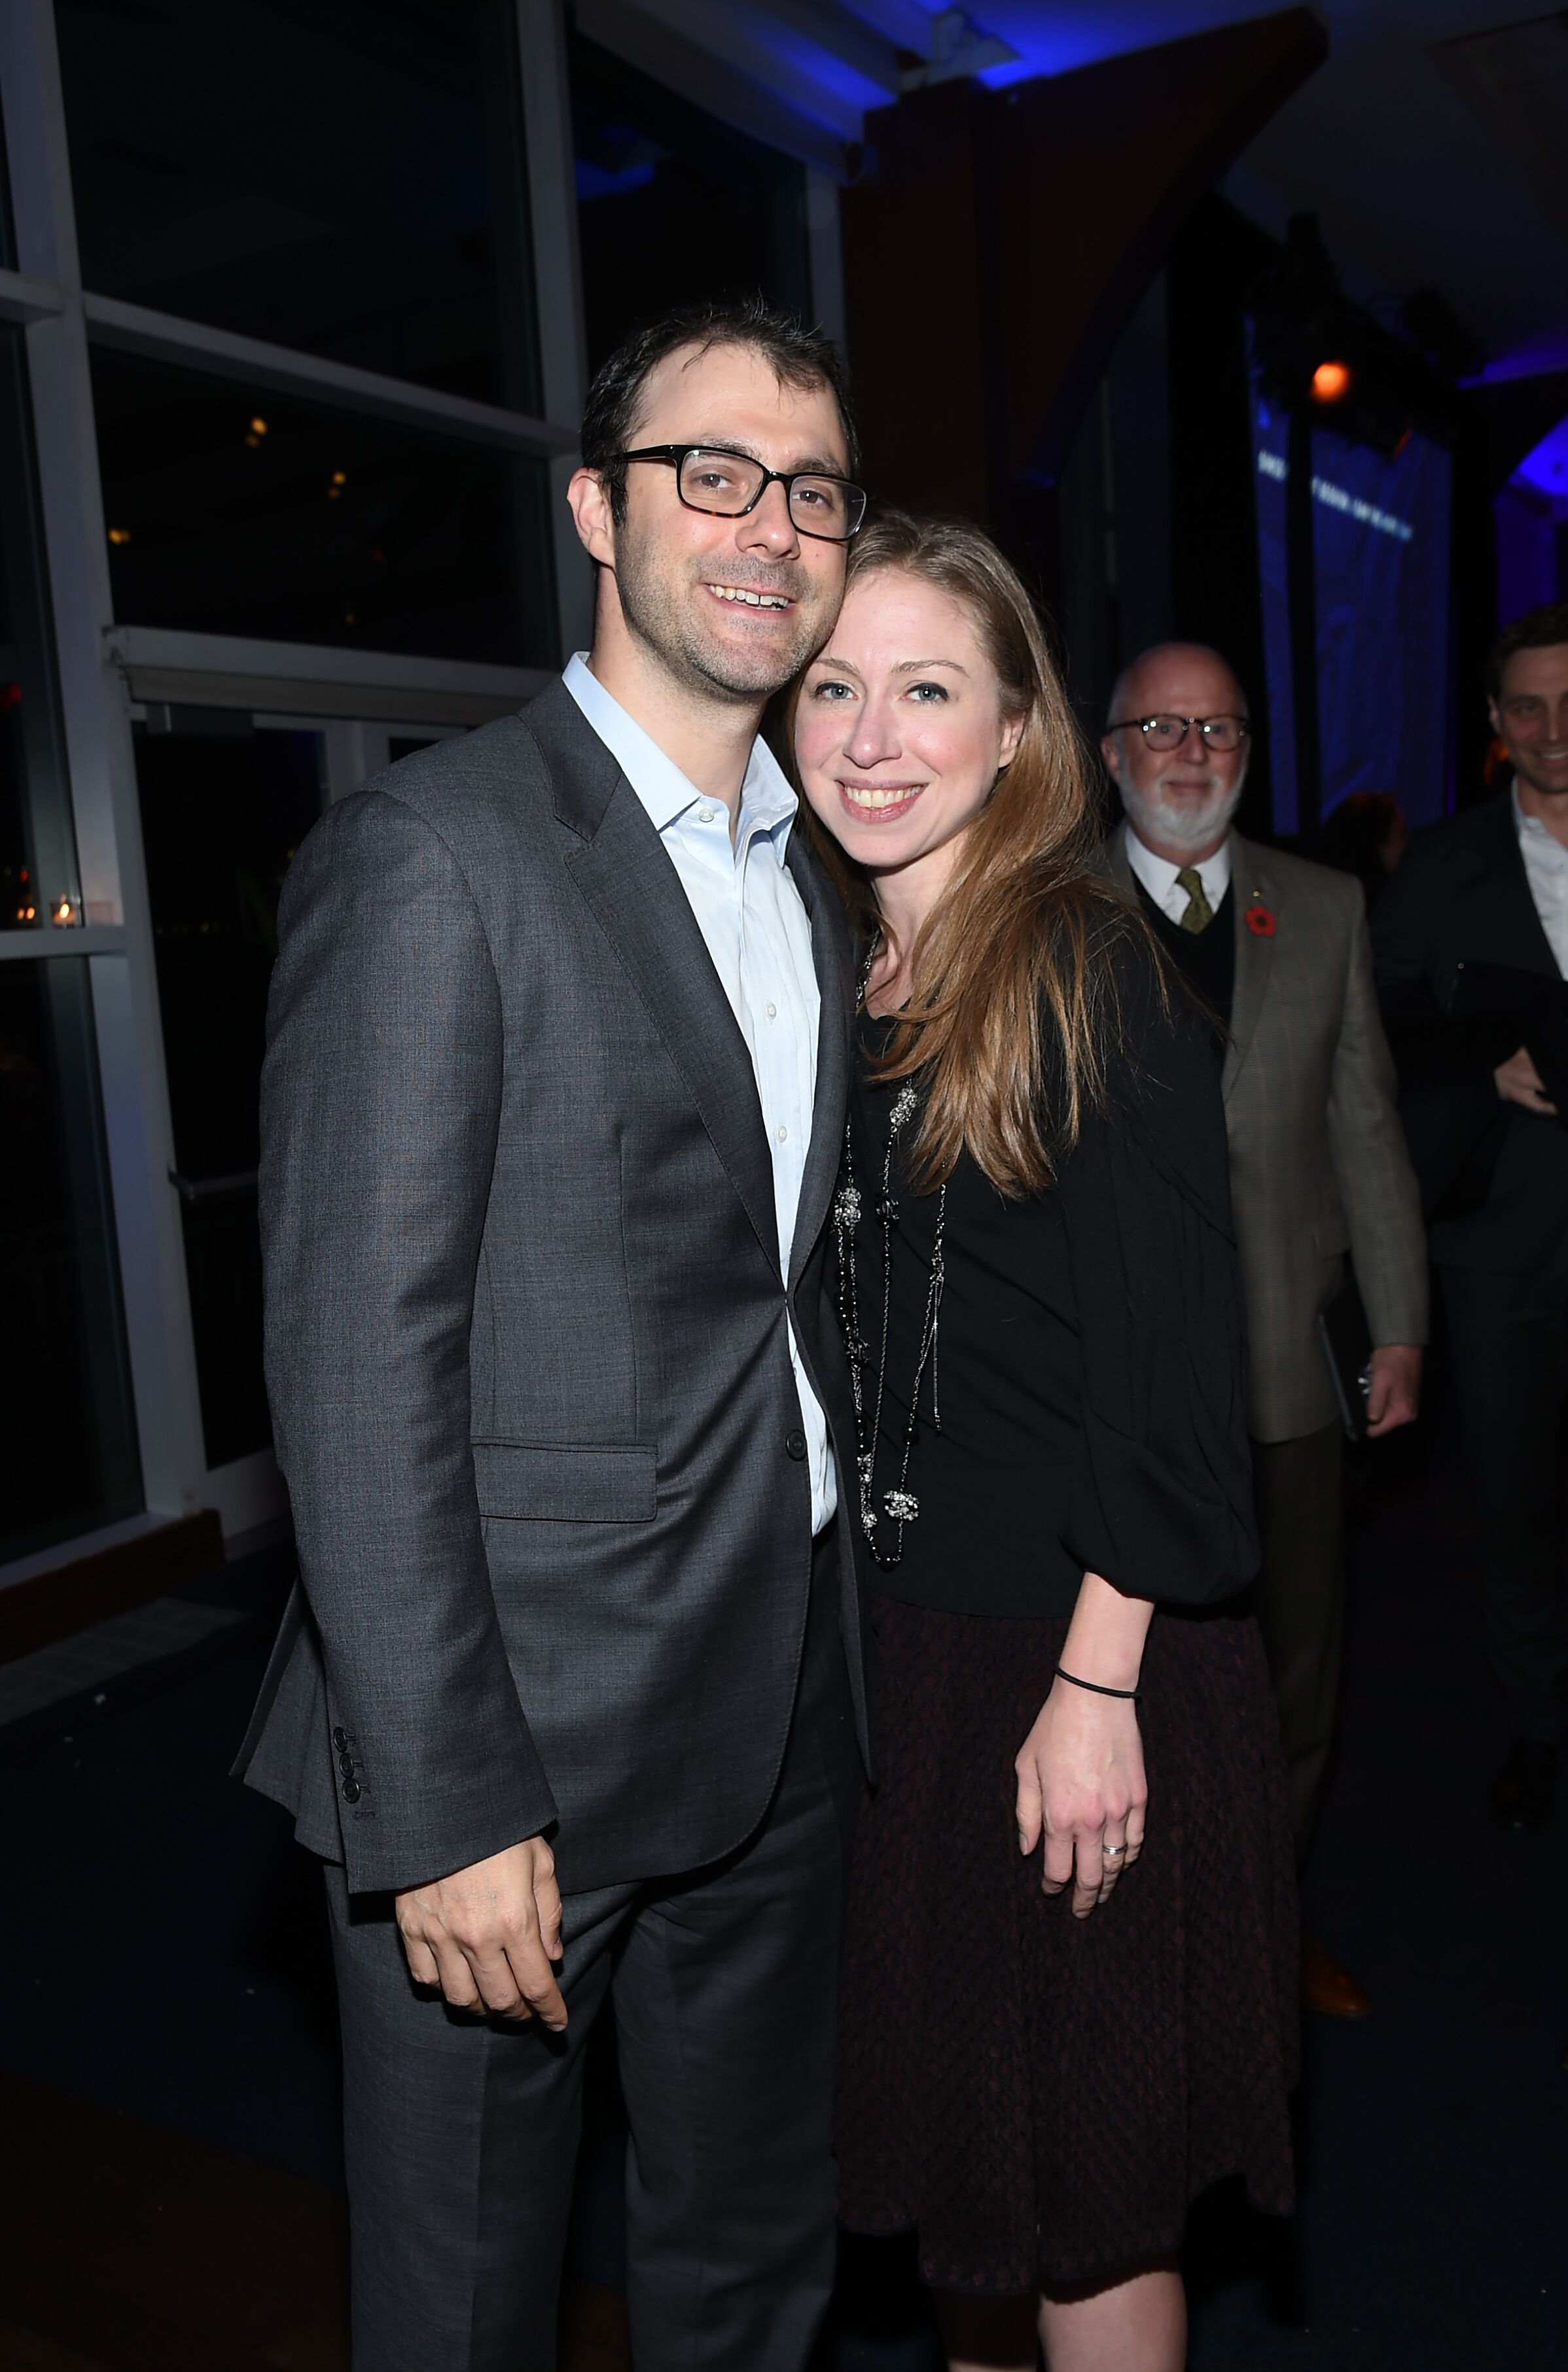 Chelsea Clinton and Marc Mezvinsky attend the Headstrong Gala 2017.   Photo: Getty Images